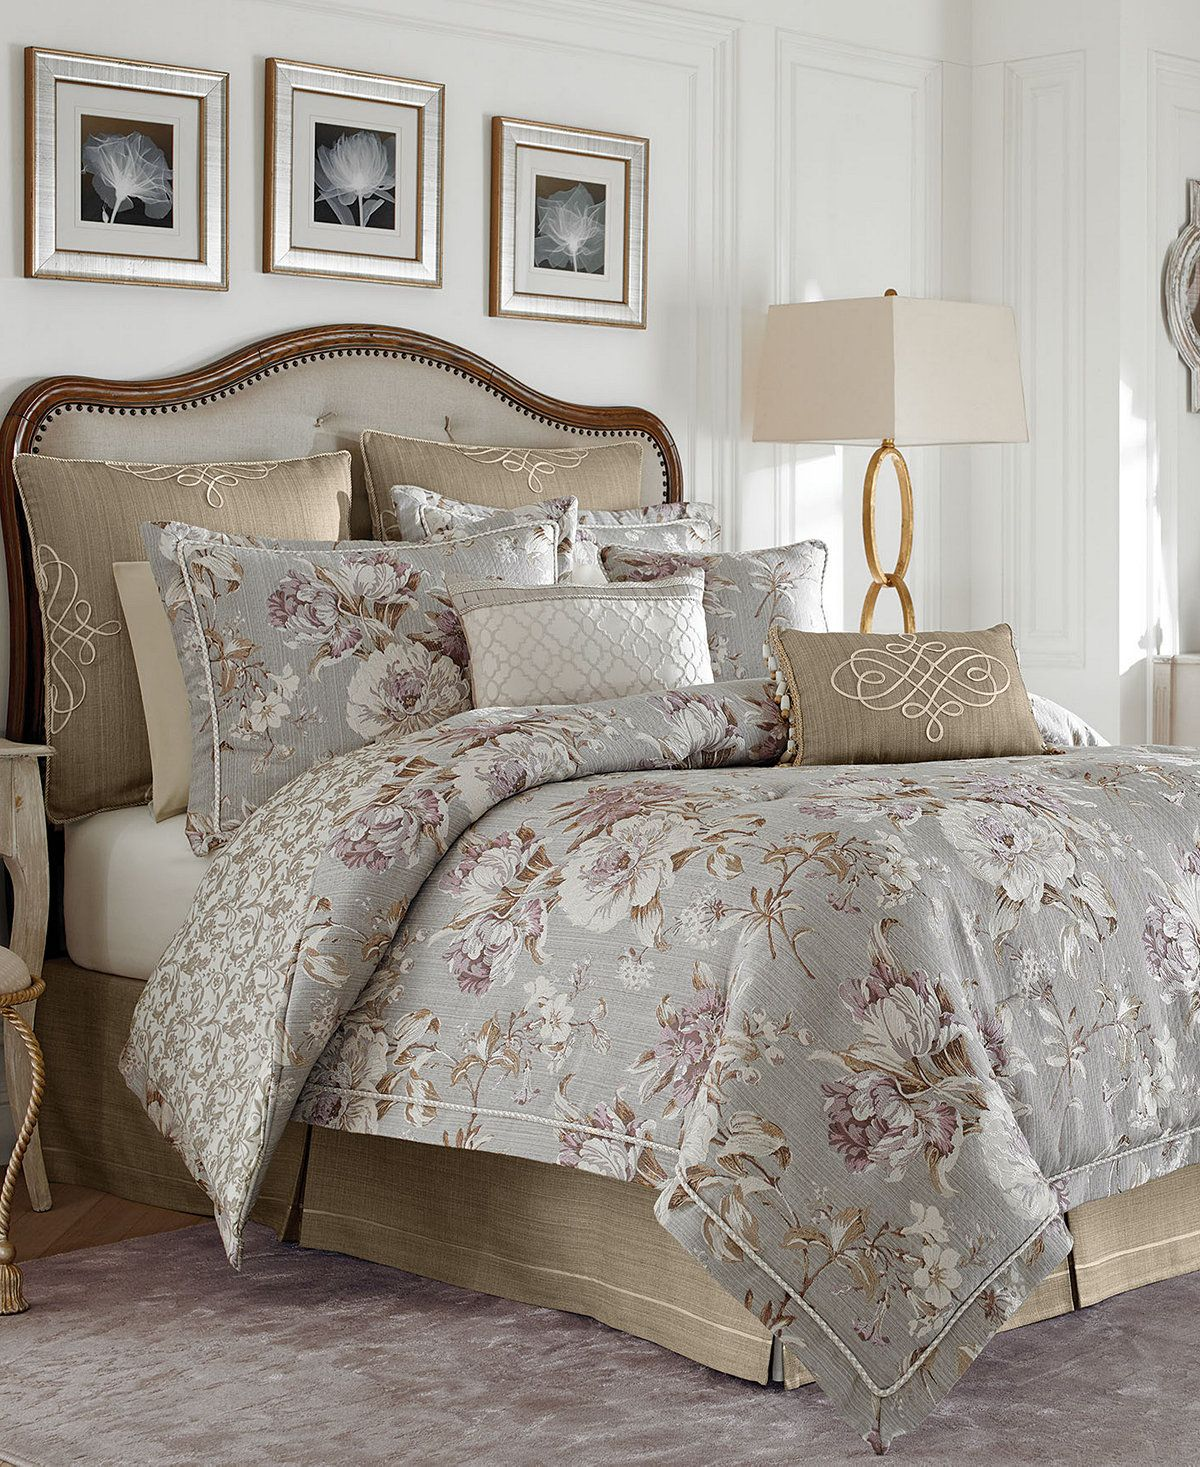 Croscill Victoria King Comforter Set - Bedding Collections - Bed ...